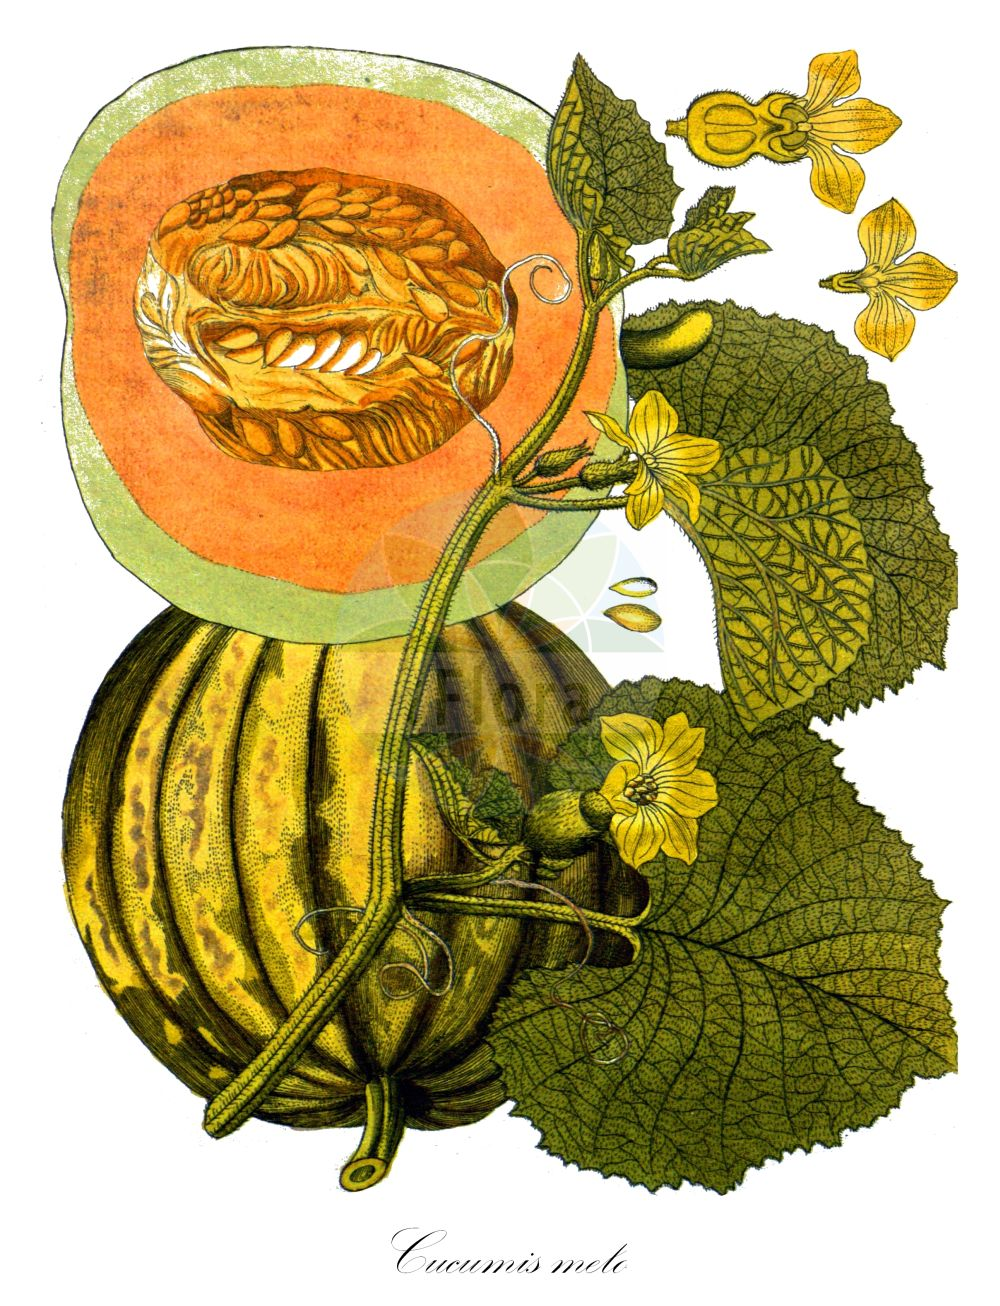 Historische Abbildung von Cucumis melo. Das Bild zeigt Blatt, Bluete, Frucht und Same. ---- Historical Drawing of Cucumis melo.The image is showing leaf, flower, fruit and seed.(Cucumis melo,Citrullus melo,Cucumis acidus,Cucumis callosus,Cucumis chate,Cucumis dudaim,Cucumis flexuosus,Cucumis trigonus,Melo agrestis,Melo dudaim,Melo sativus,Cucumis,Cucurbitaceae,Kuerbisgewaechse,Cucurbit family,Blatt,Bluete,Frucht,Same,leaf,flower,fruit,seed,Vietz (1800-1822))